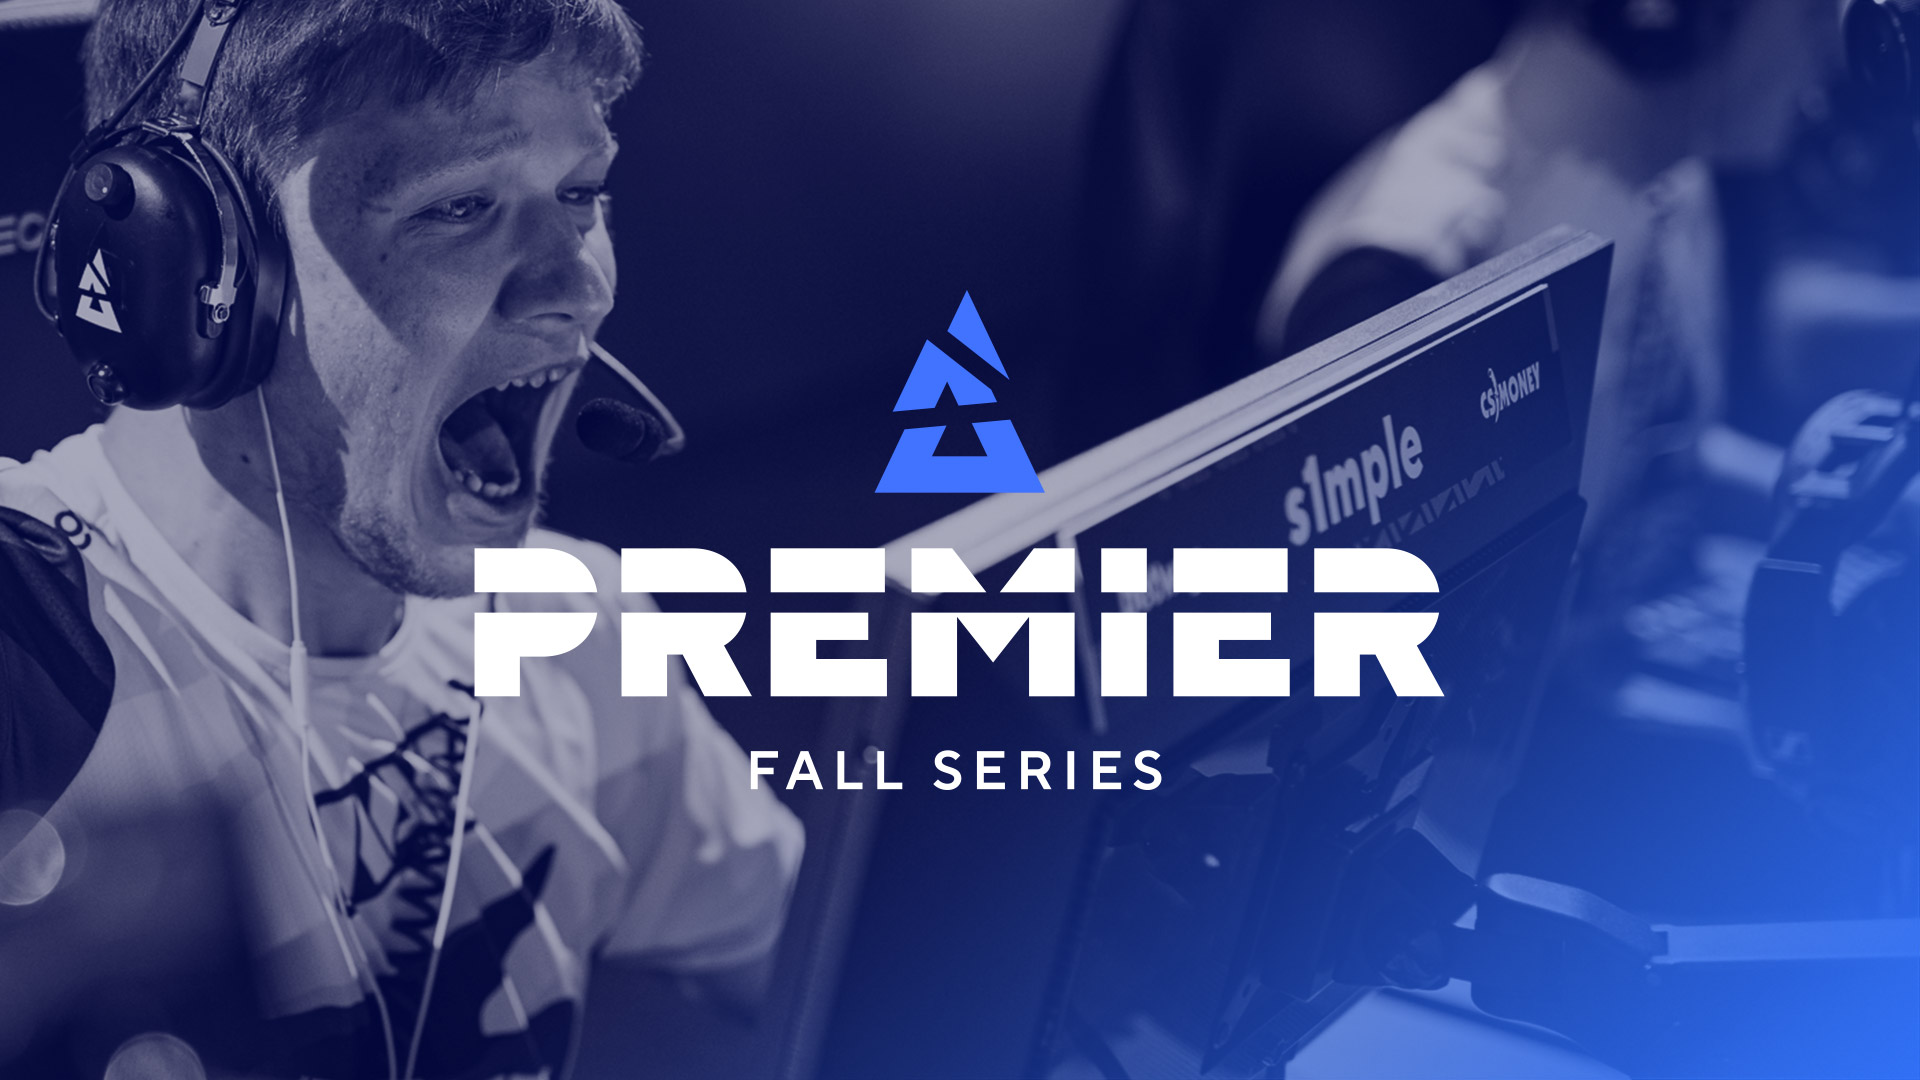 BLAST Premier Fall Series with S1mple